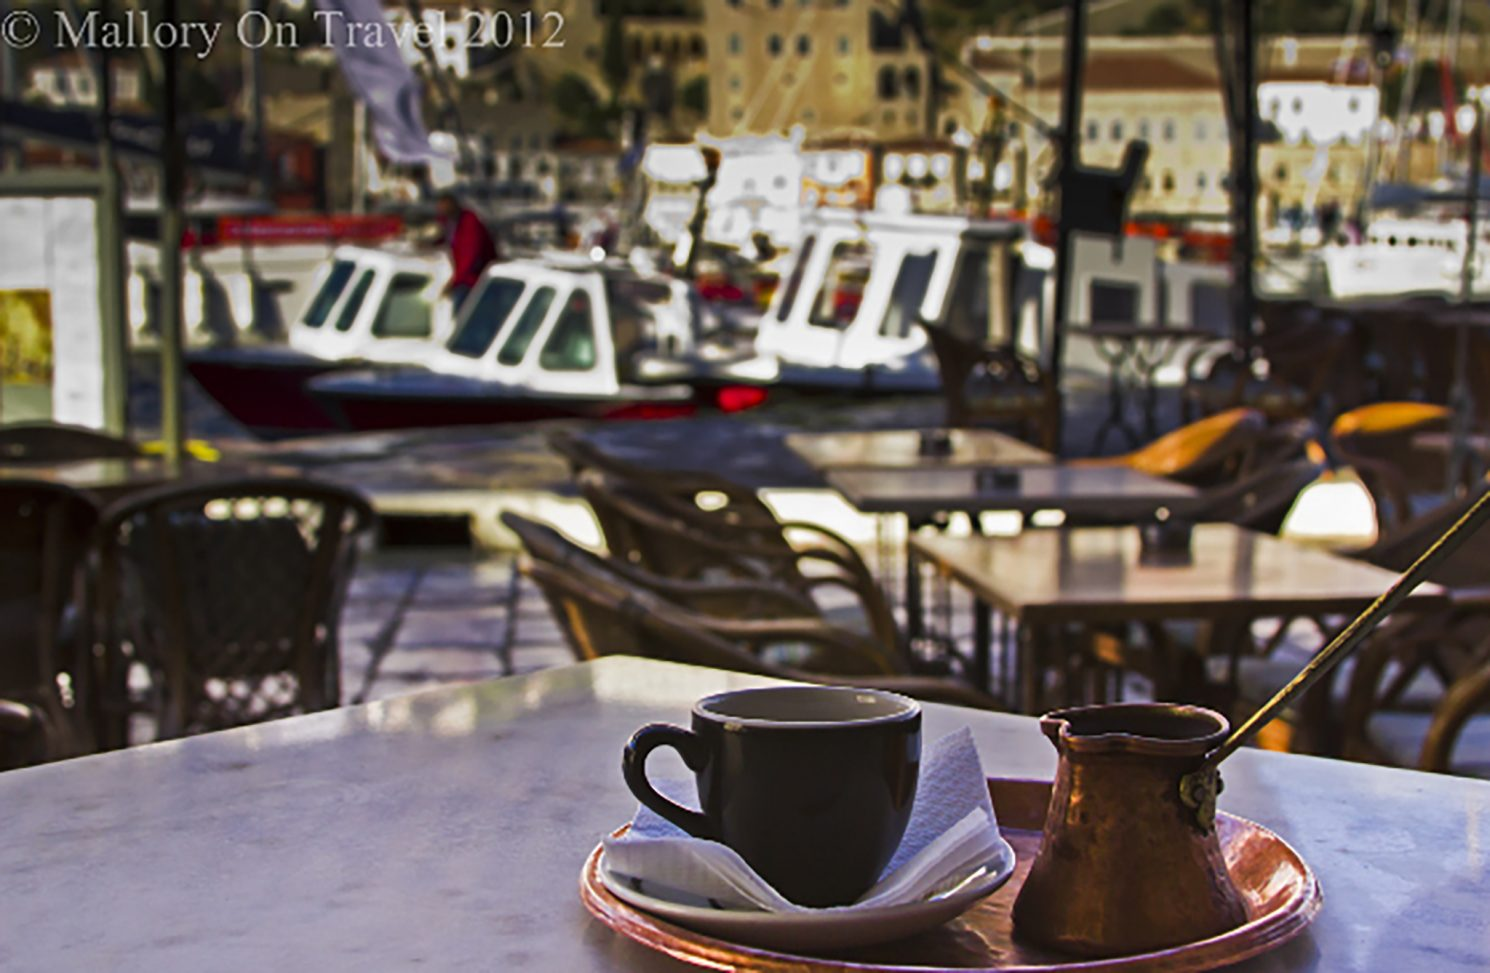 Coffee culture; Greek coffee on the Saronic Island of Hydra on Mallory on Travel, adventure, photography iain-mallory-300-3 hydra